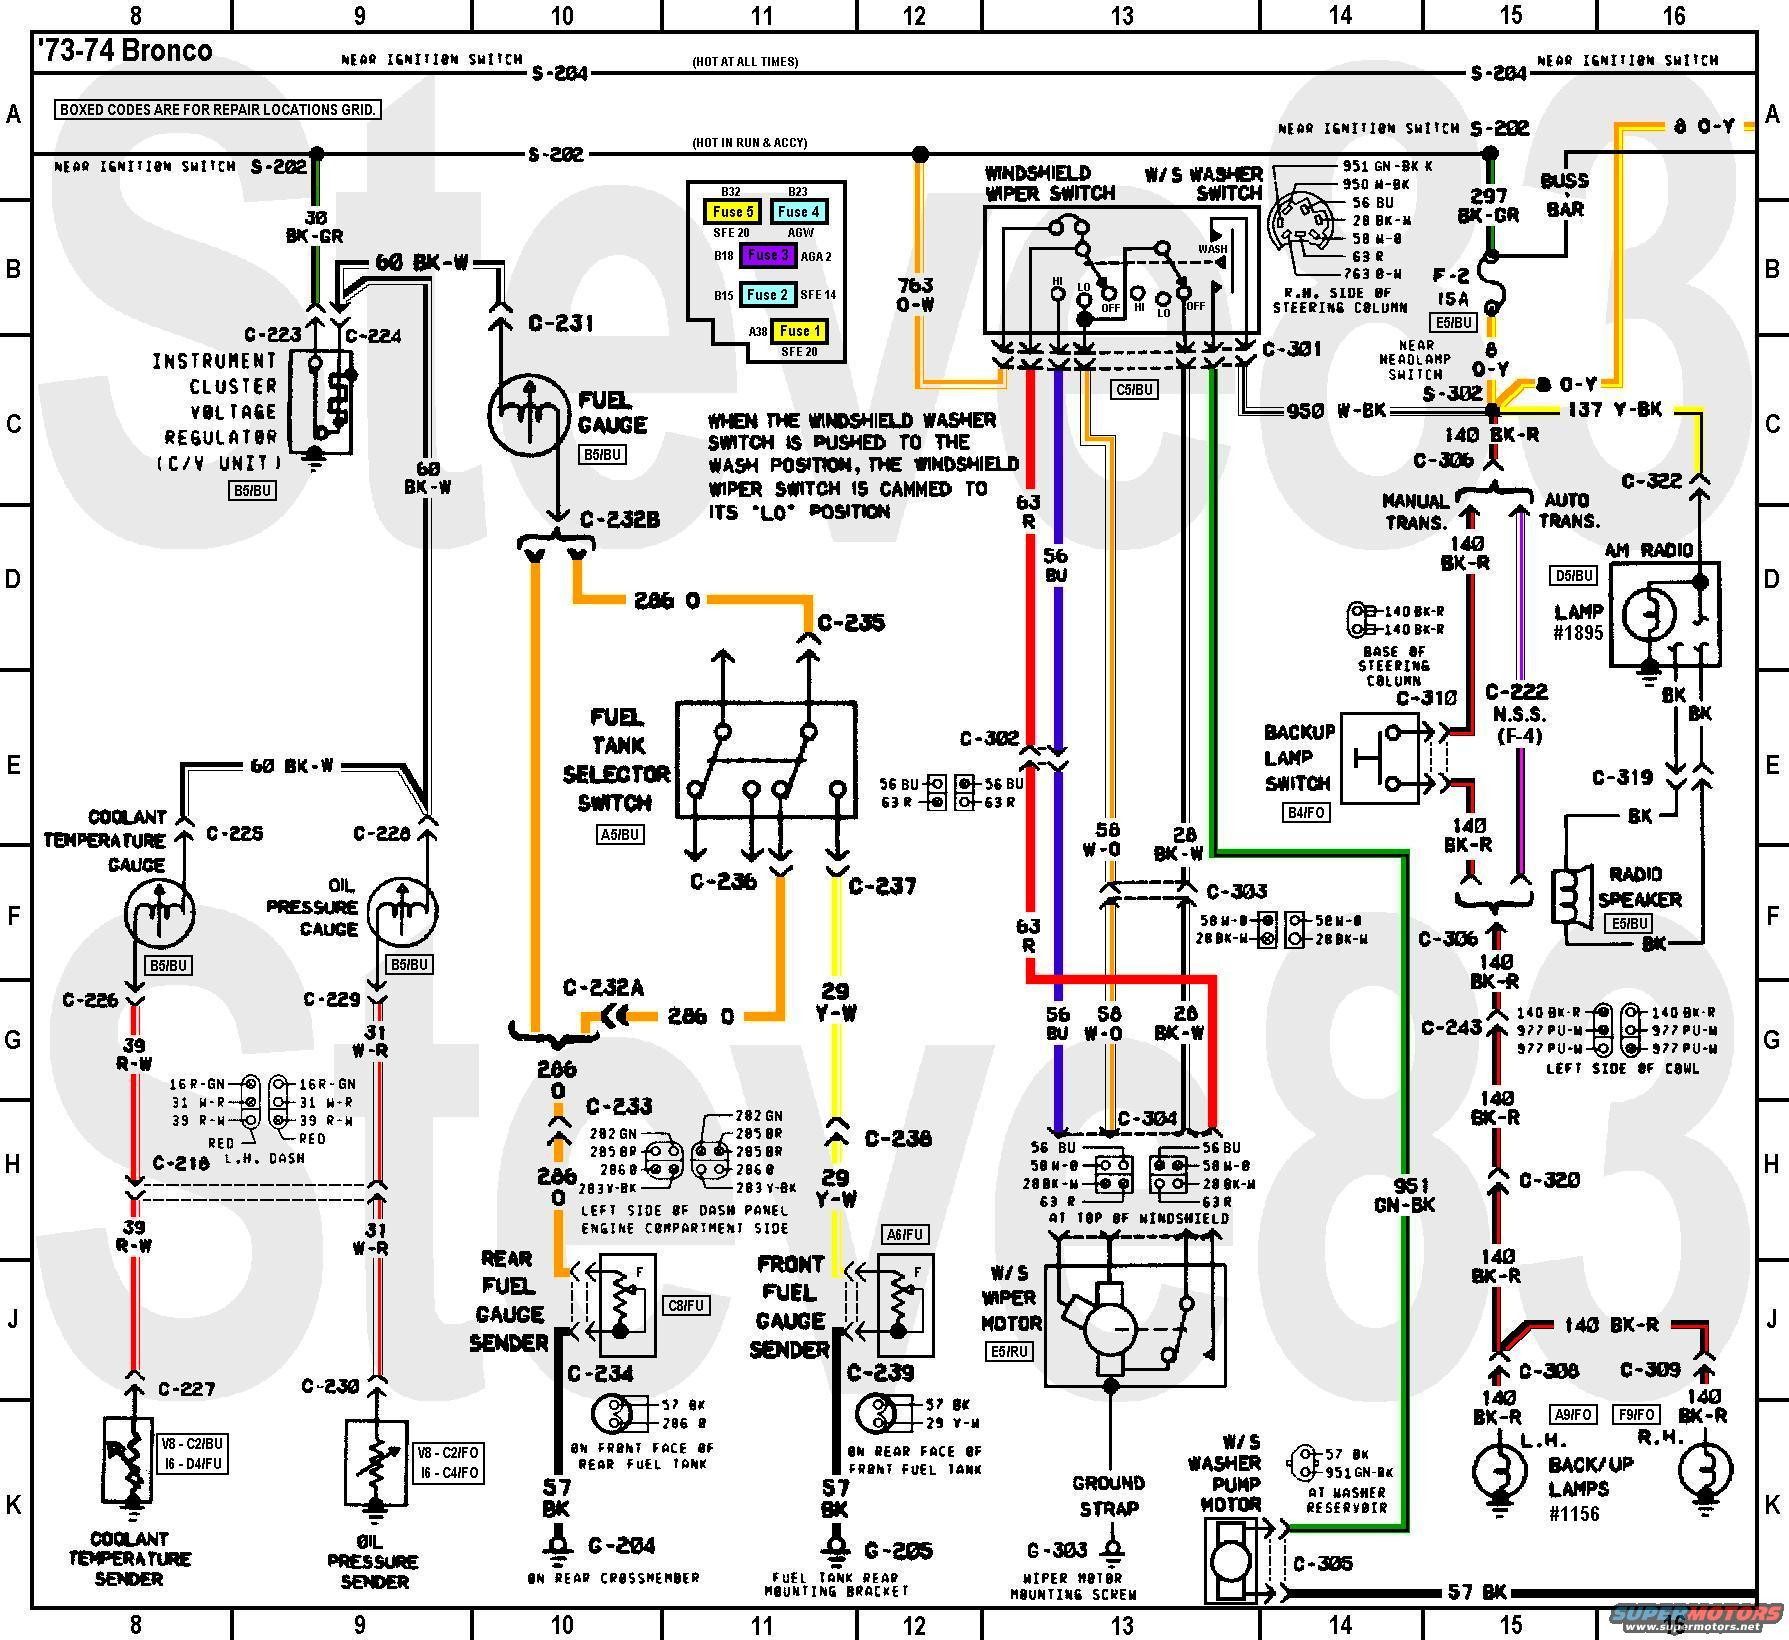 1977 ford bronco wiring diagram ez go rxv 48 volt battery 1976 f250 get free image about